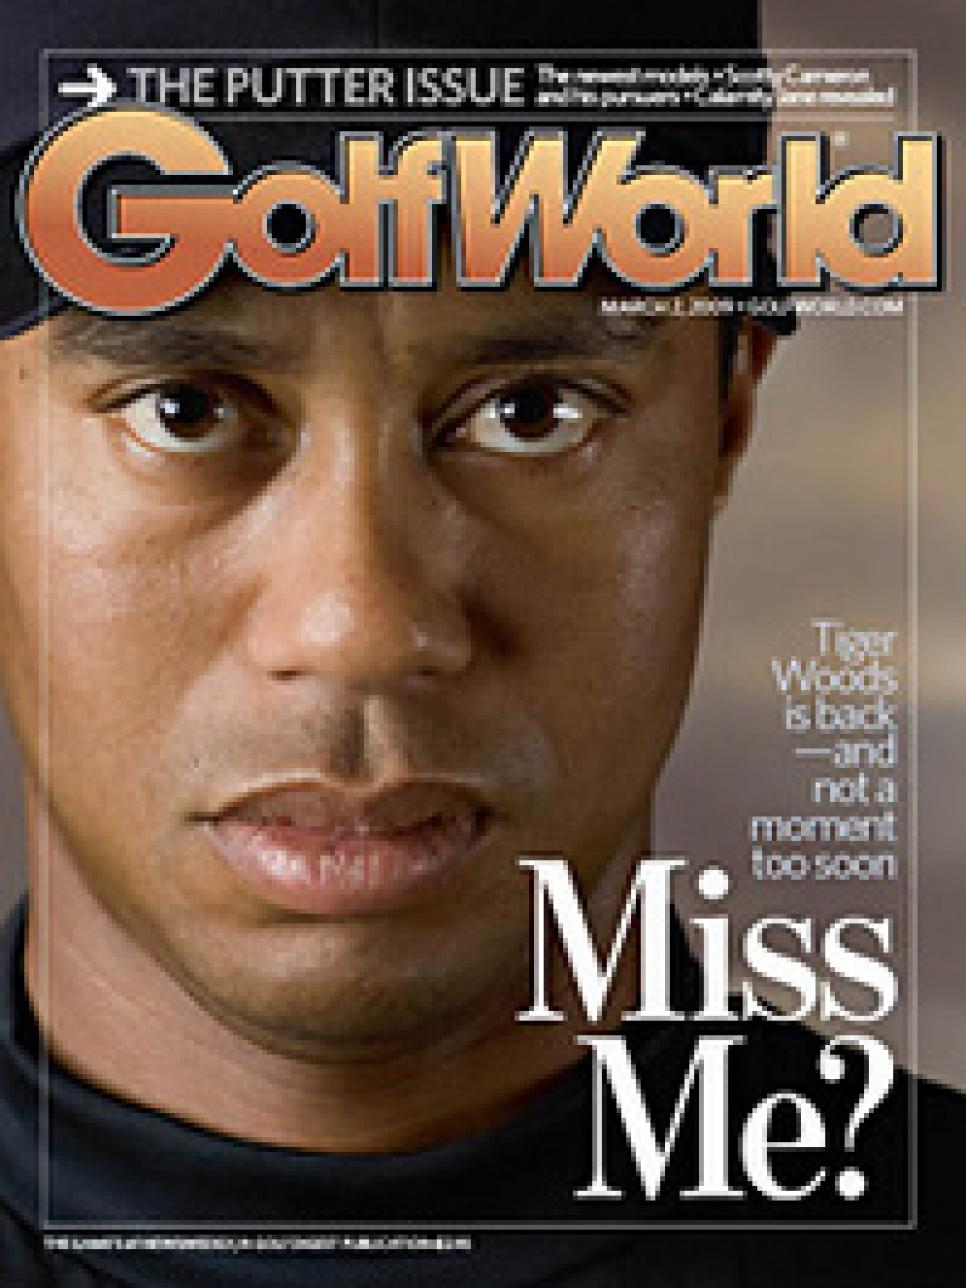 magazine__editors-images-2009-03-03-gw20090302cover_2281.jpg